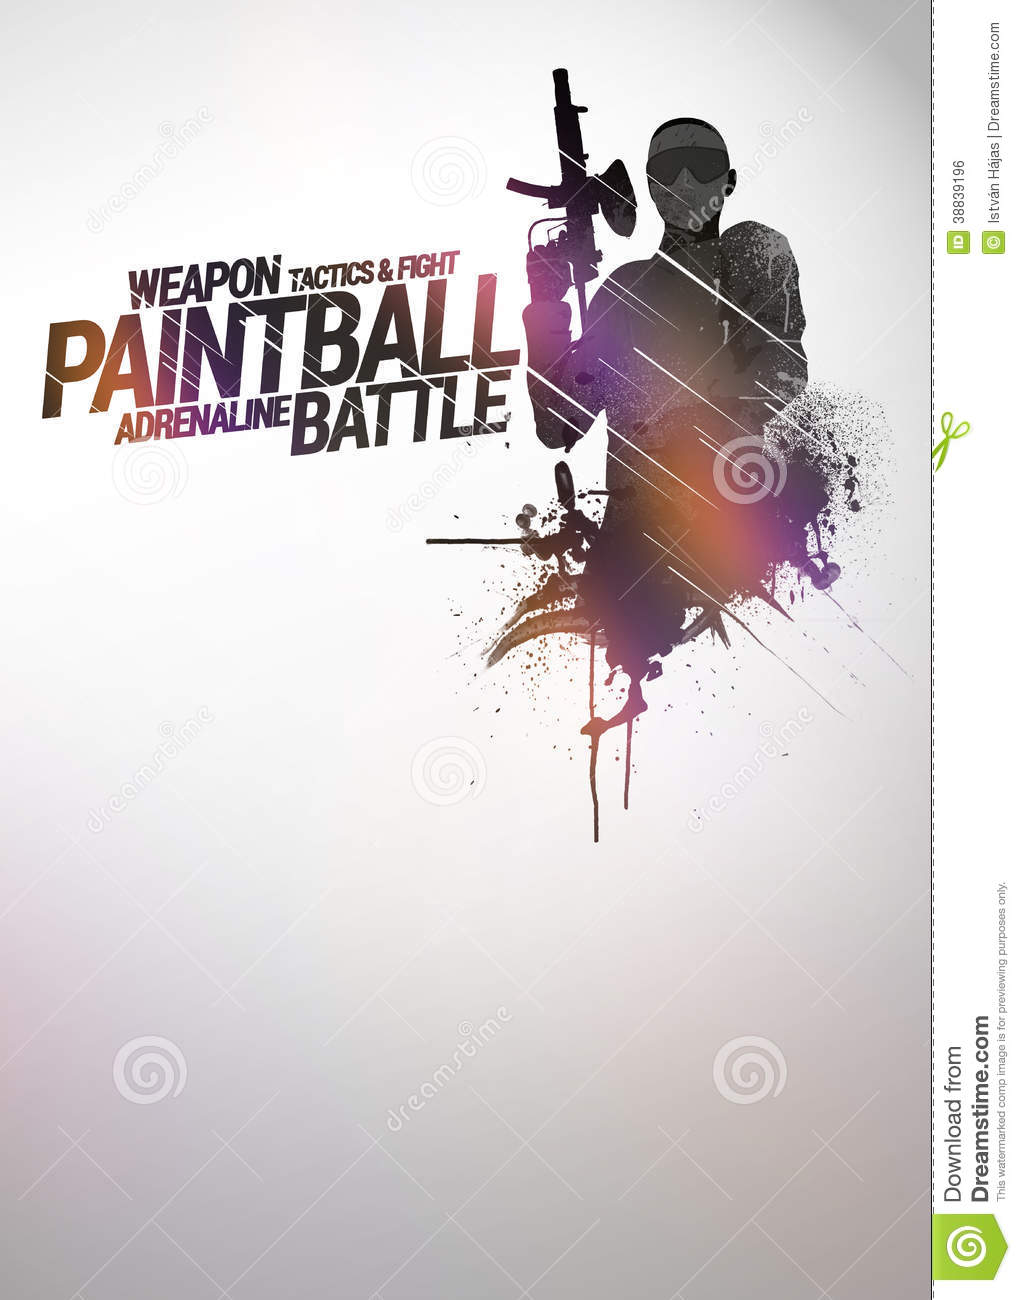 Paintball Or Airsoft Background Stock Photo - Image: 38839196